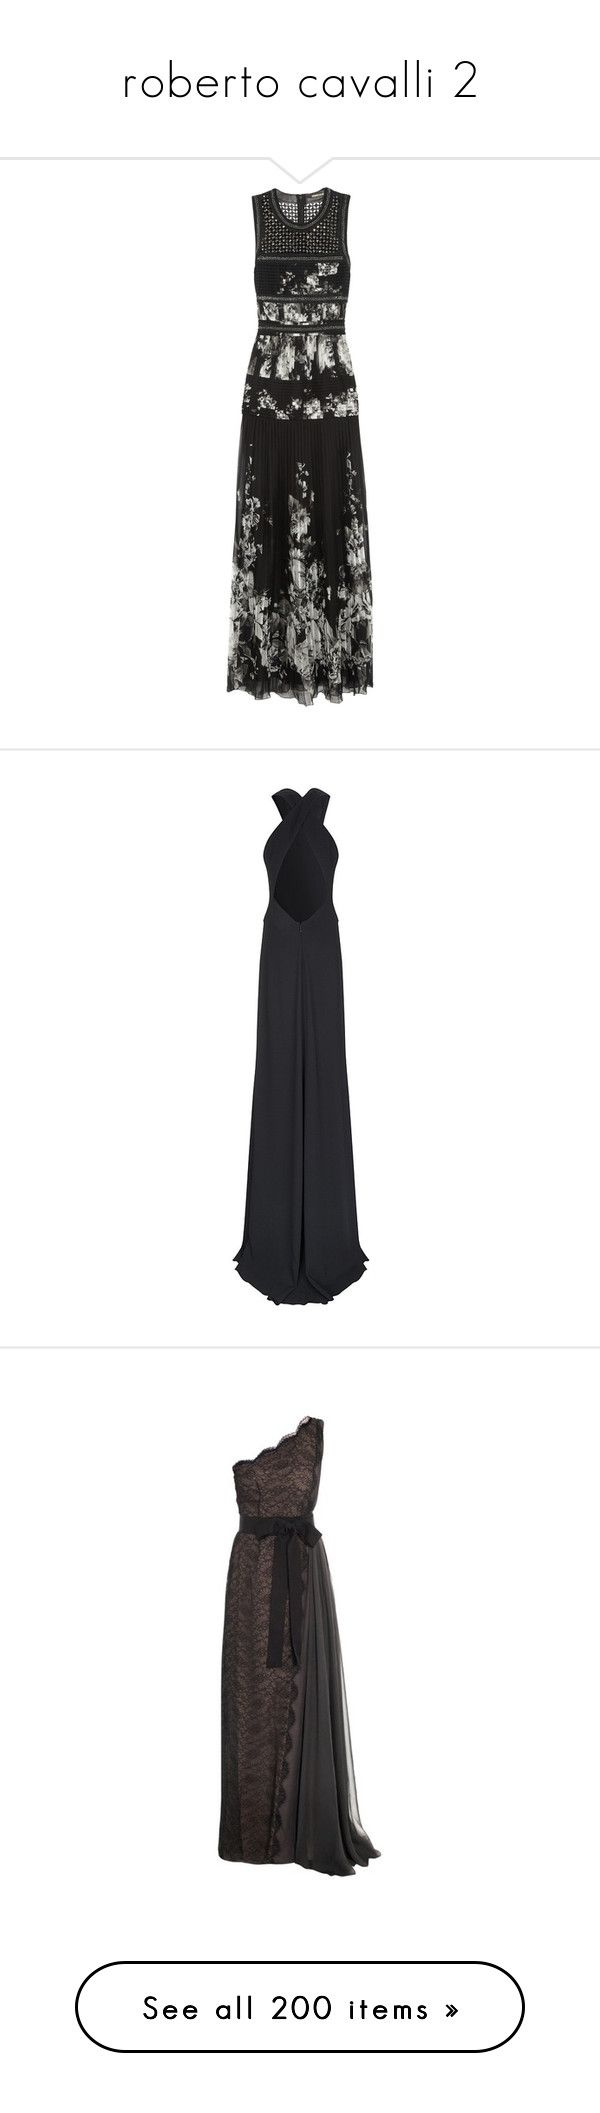 """""""roberto cavalli 2"""" by la-cherie-love ❤ liked on Polyvore featuring dresses, gowns, roberto cavalli, vestidos, black, beaded silk chiffon gown, embellished dress, floral evening dresses, cut out gown and floral evening gown"""